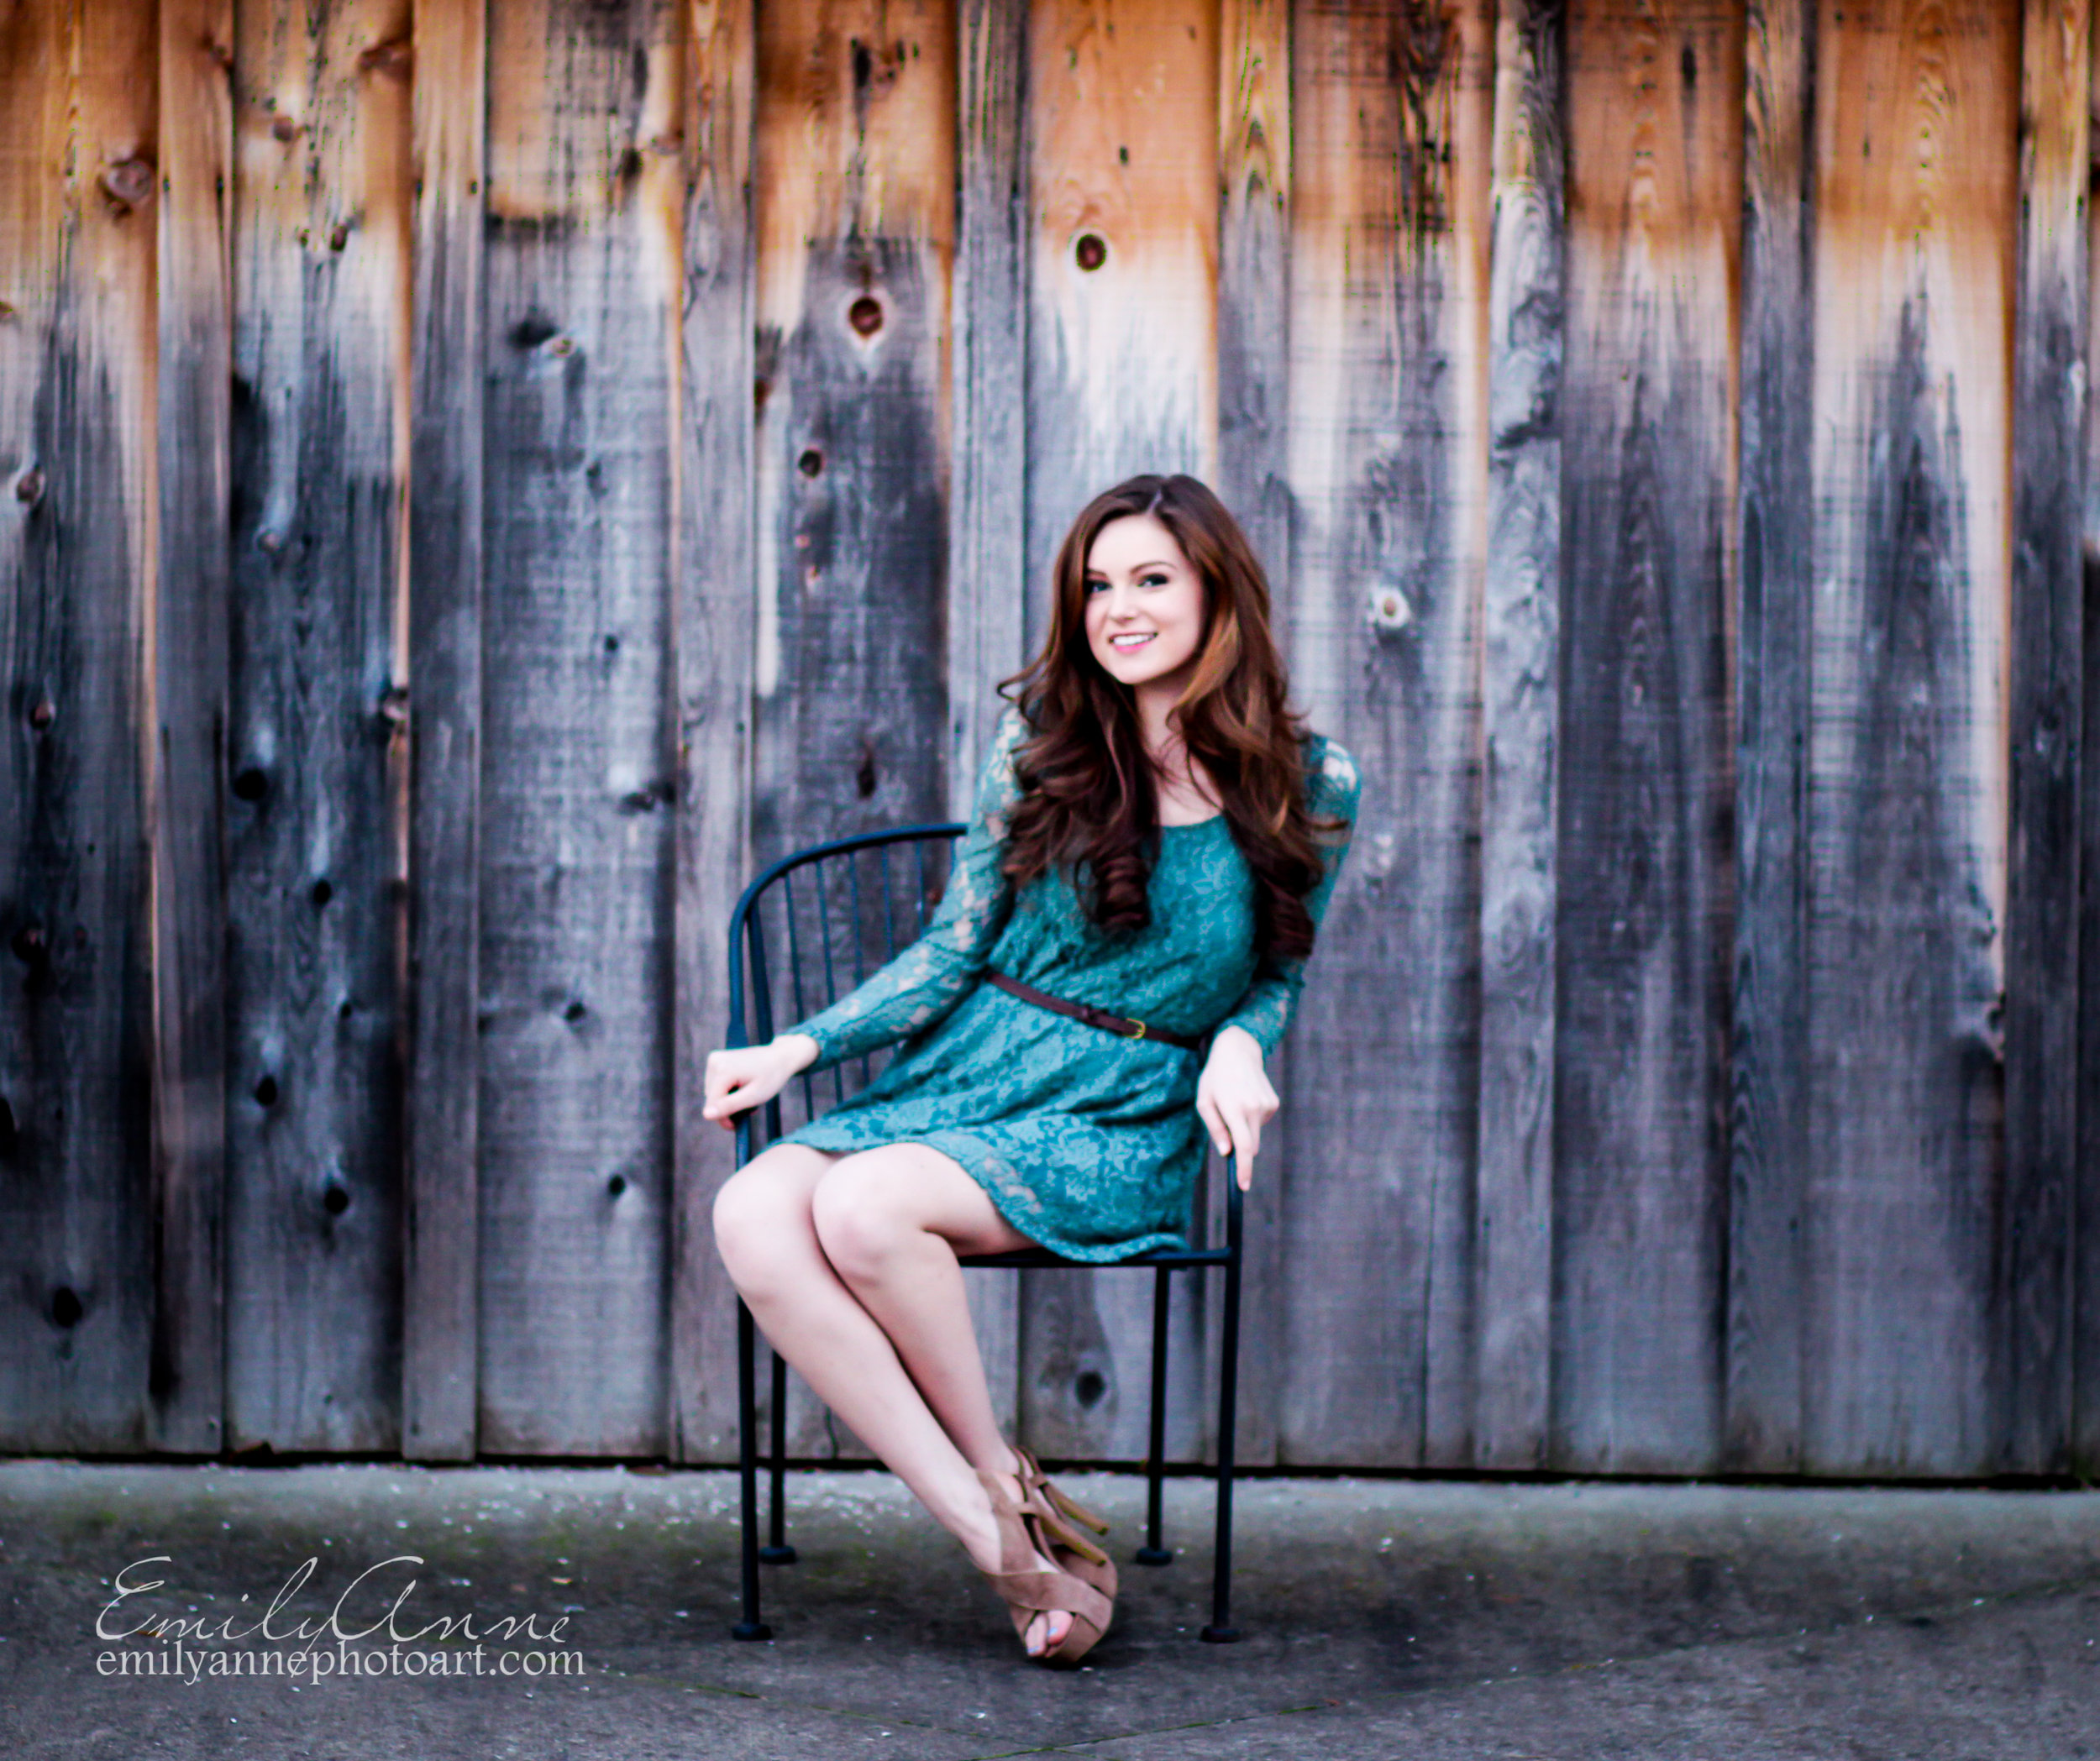 best model photographer in nashville and surrounding areas emily anne photography